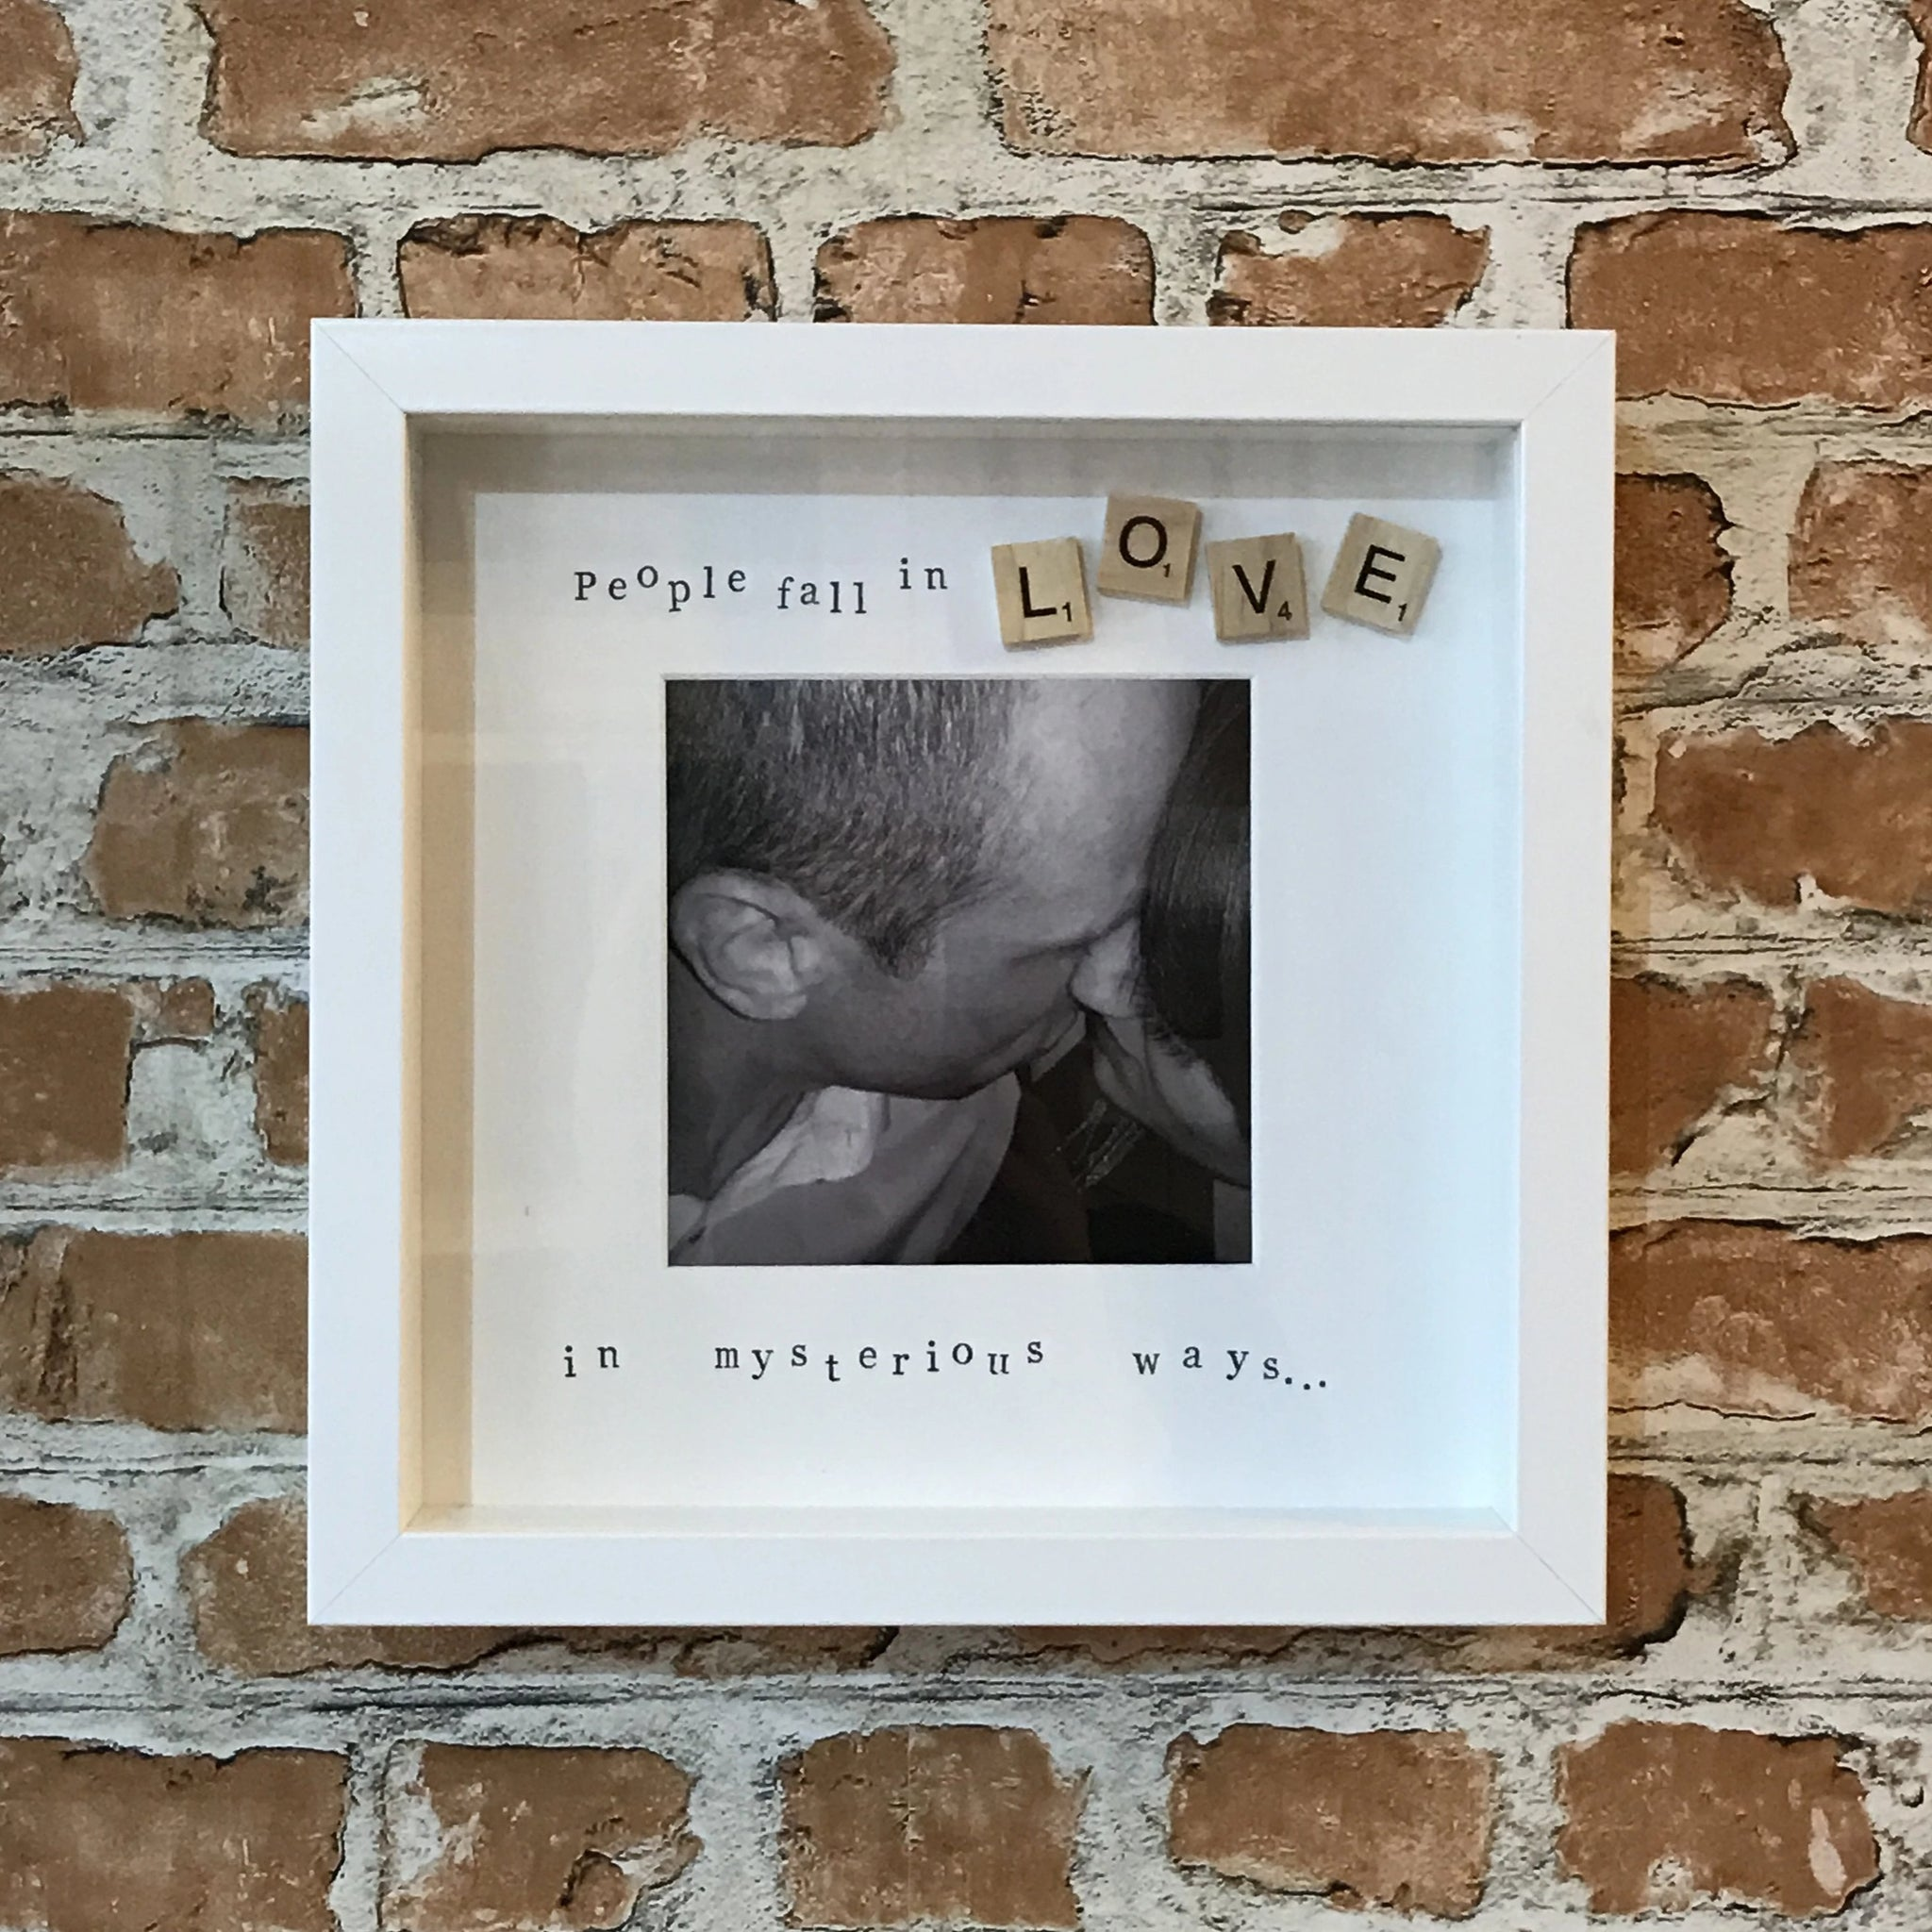 People fall in love in mysterious ways photo frame